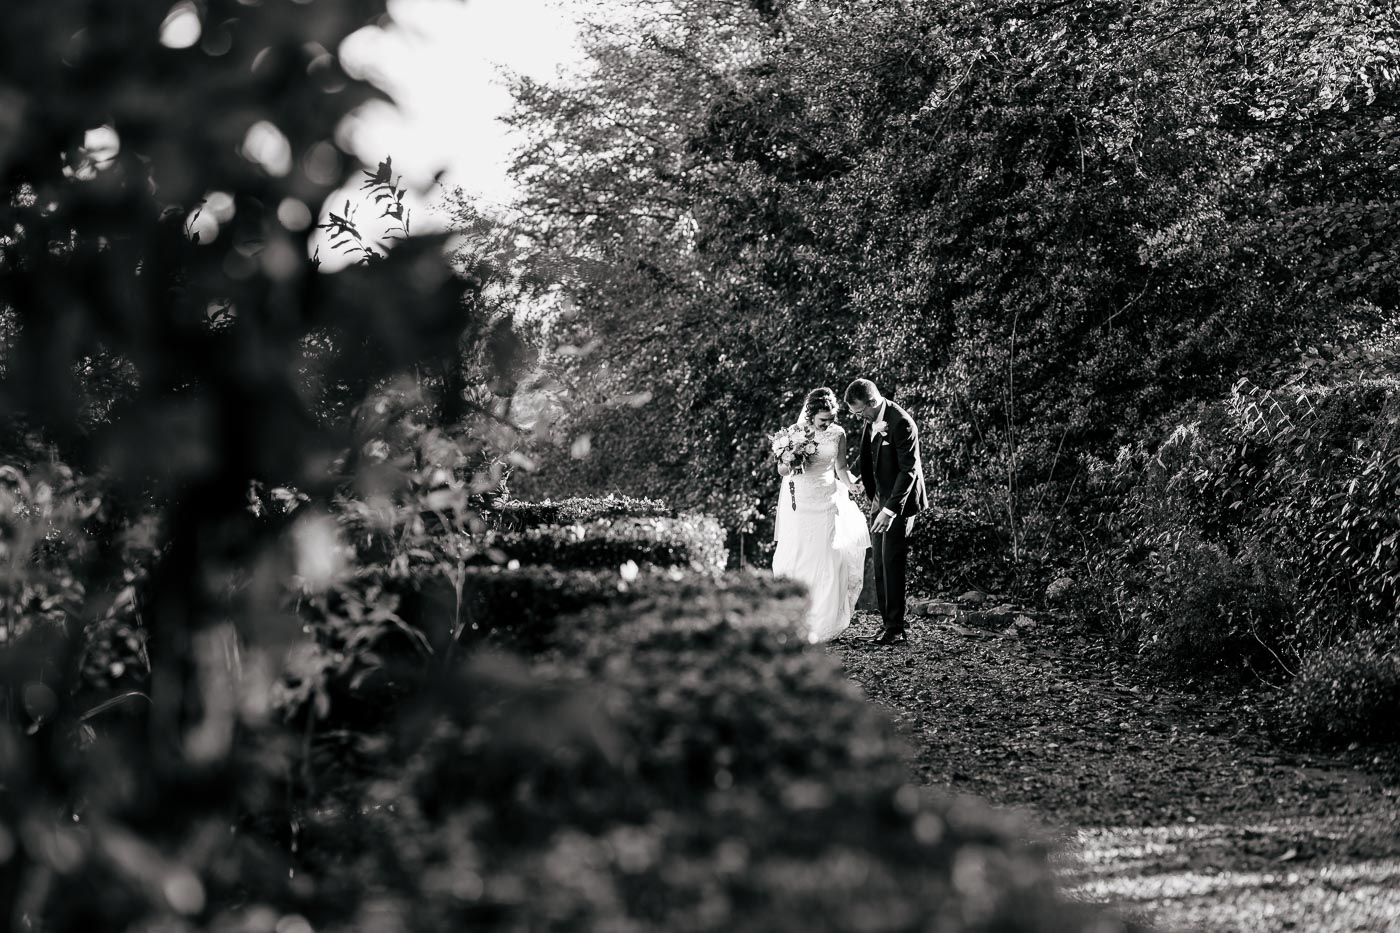 documentary wedding photography bride and groom walking in the gardens